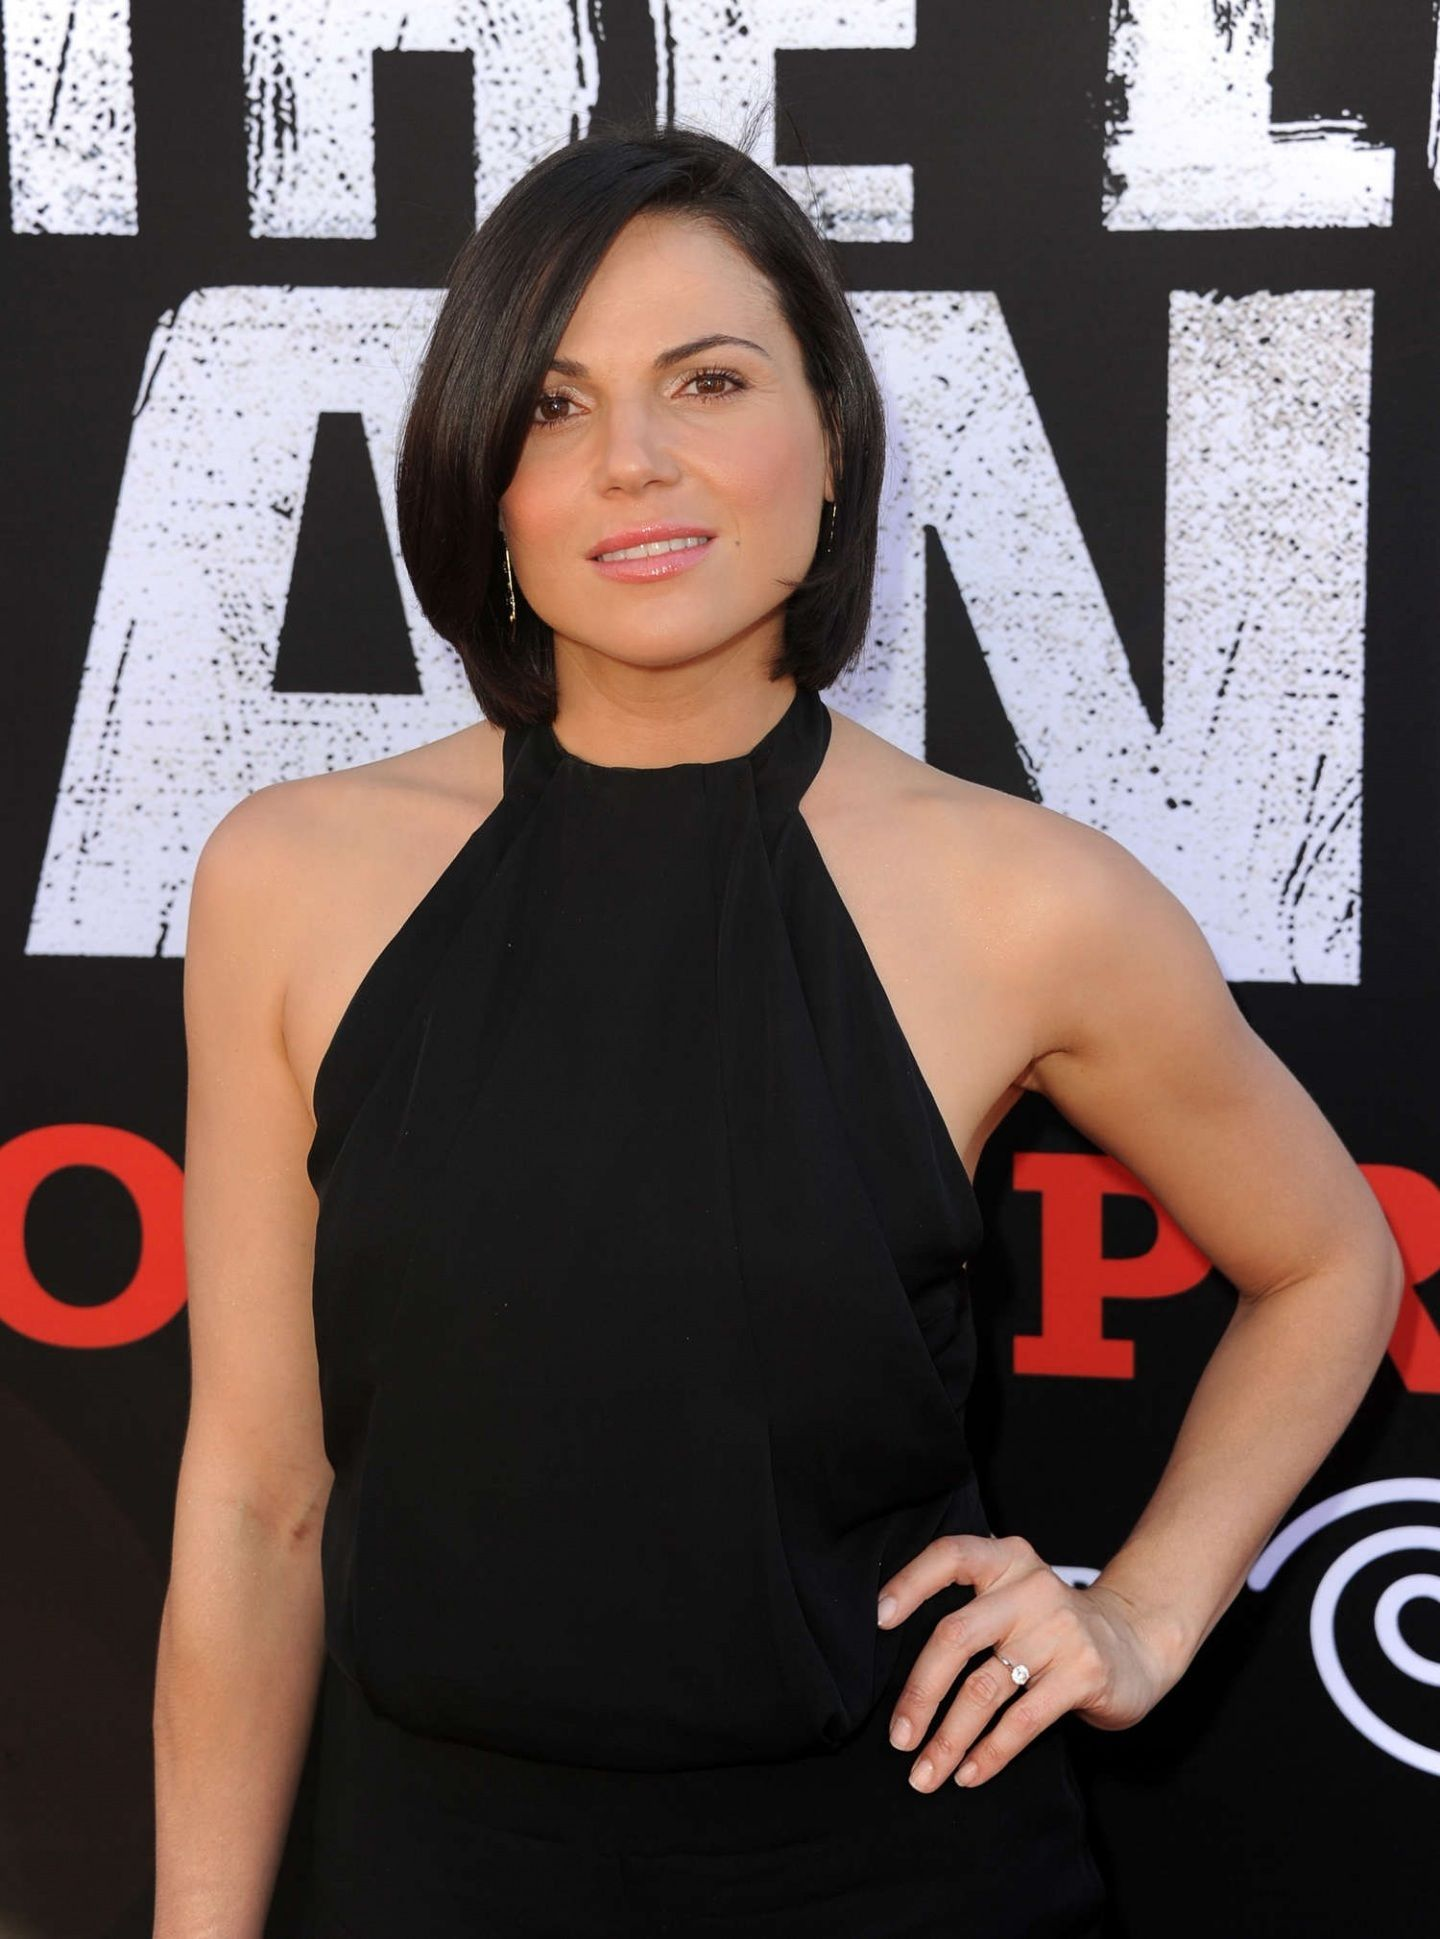 Celebrity Lana Parrilla naked (23 foto and video), Topless, Sideboobs, Twitter, braless 2019